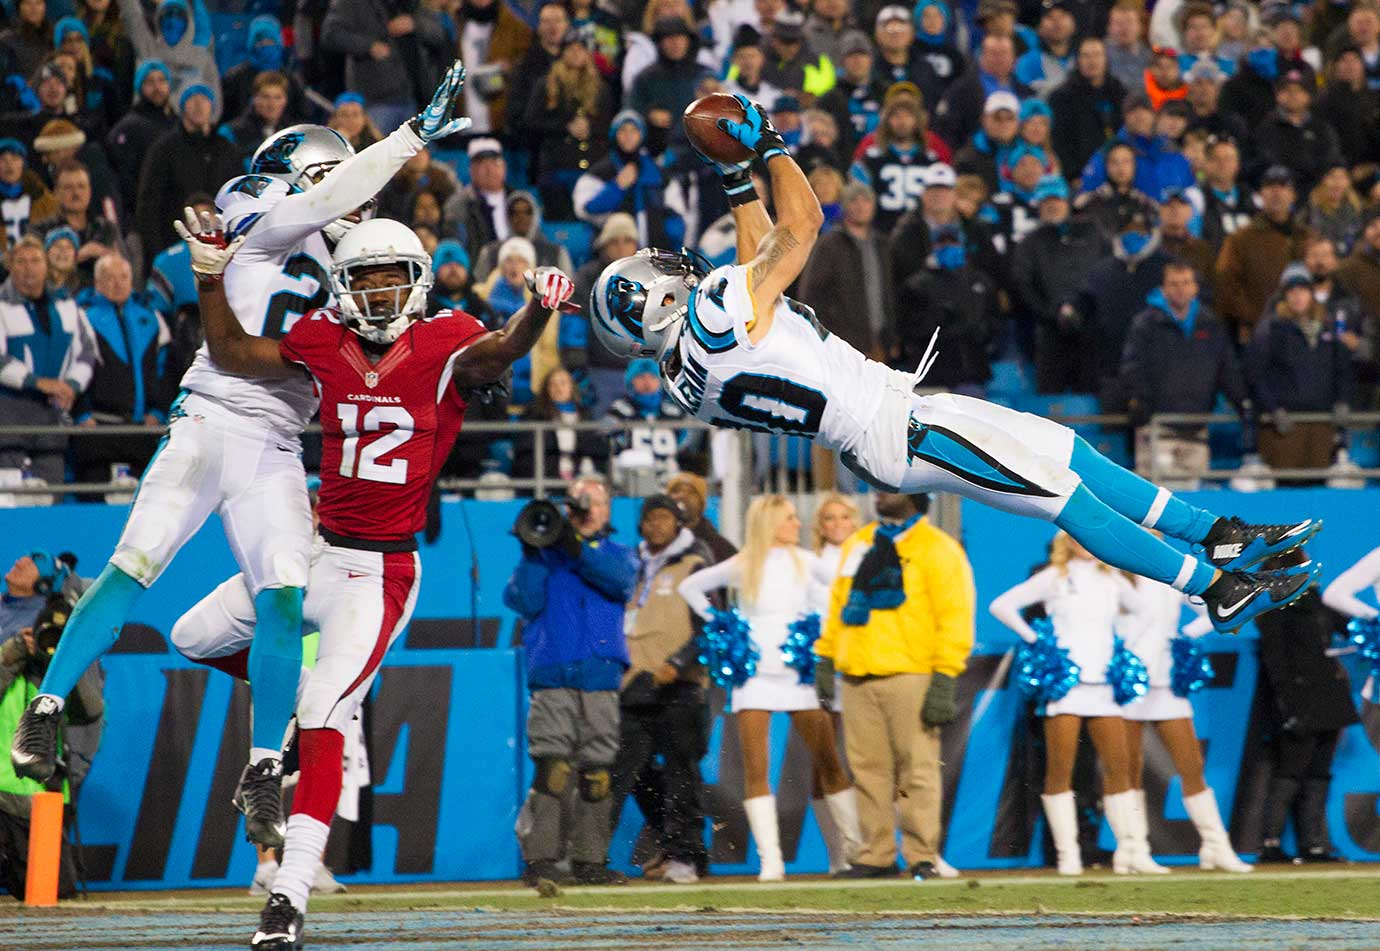 Carolina Panthers free safety Kurt Coleman makes an interception against the Arizona Cardinals.